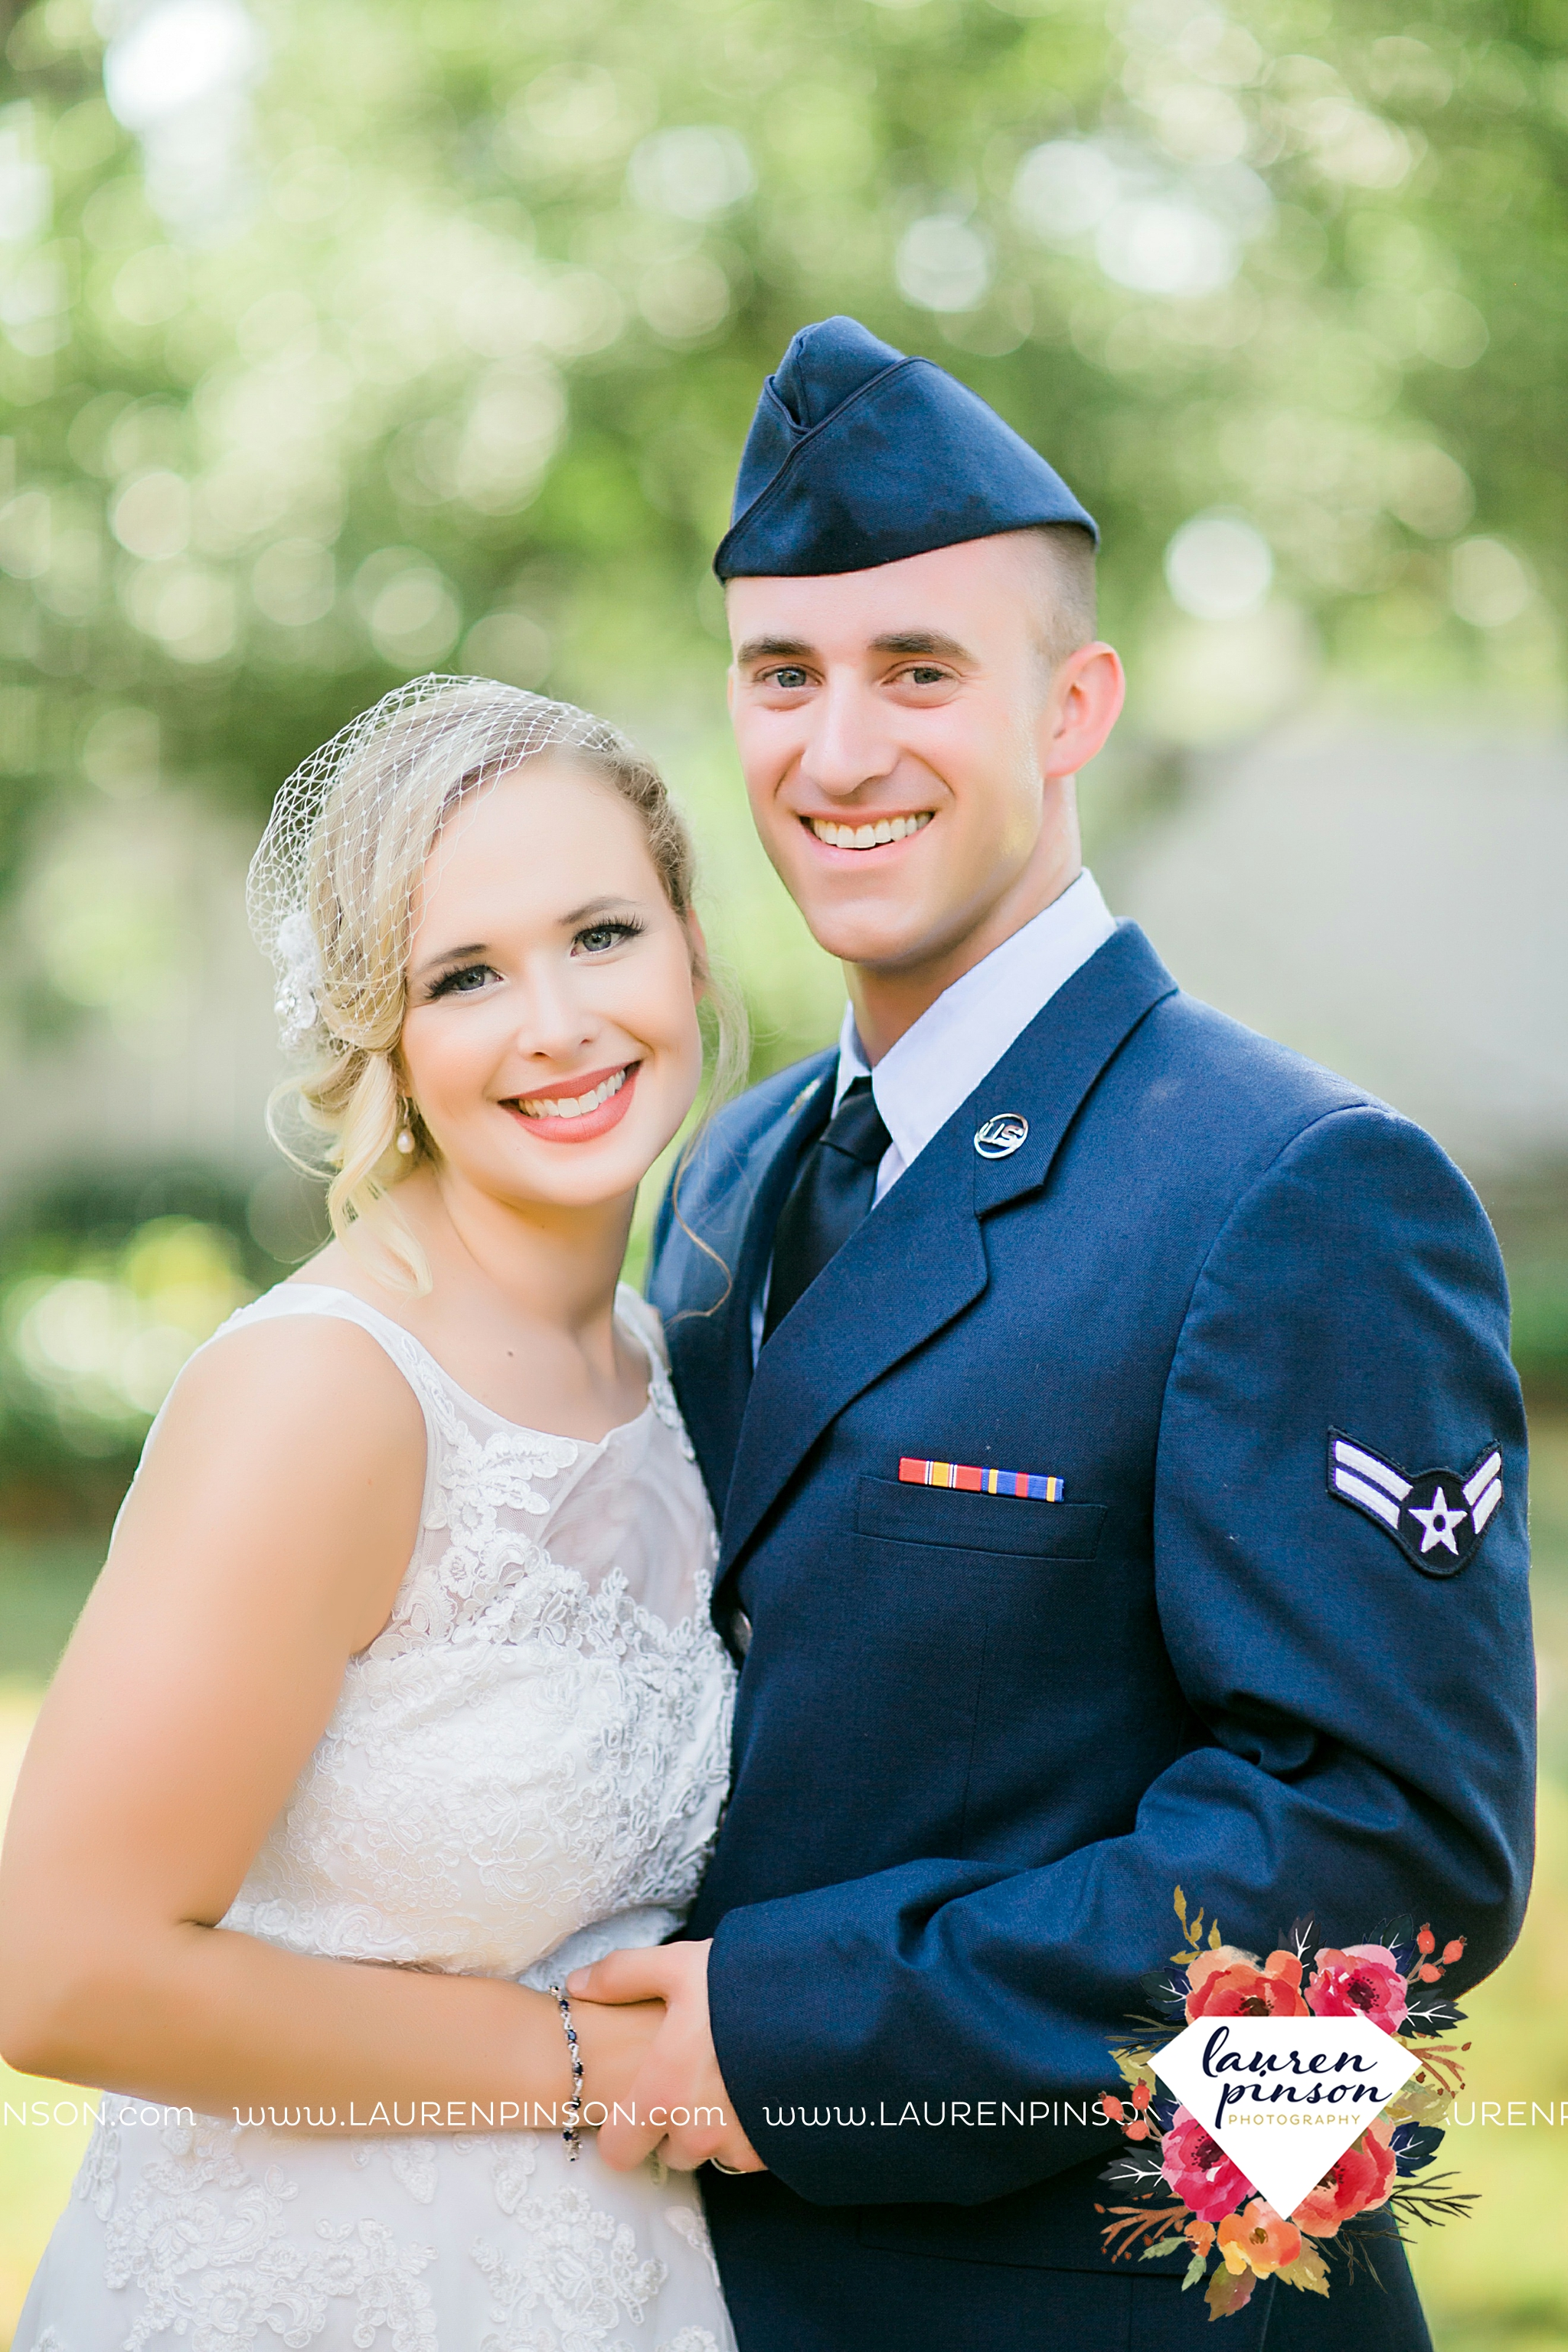 sheppard-afb-wichita-falls-texas-elopement-courthouse-wedding-photographer-justice-of-the-peace-judge-little-ceremony_3290.jpg